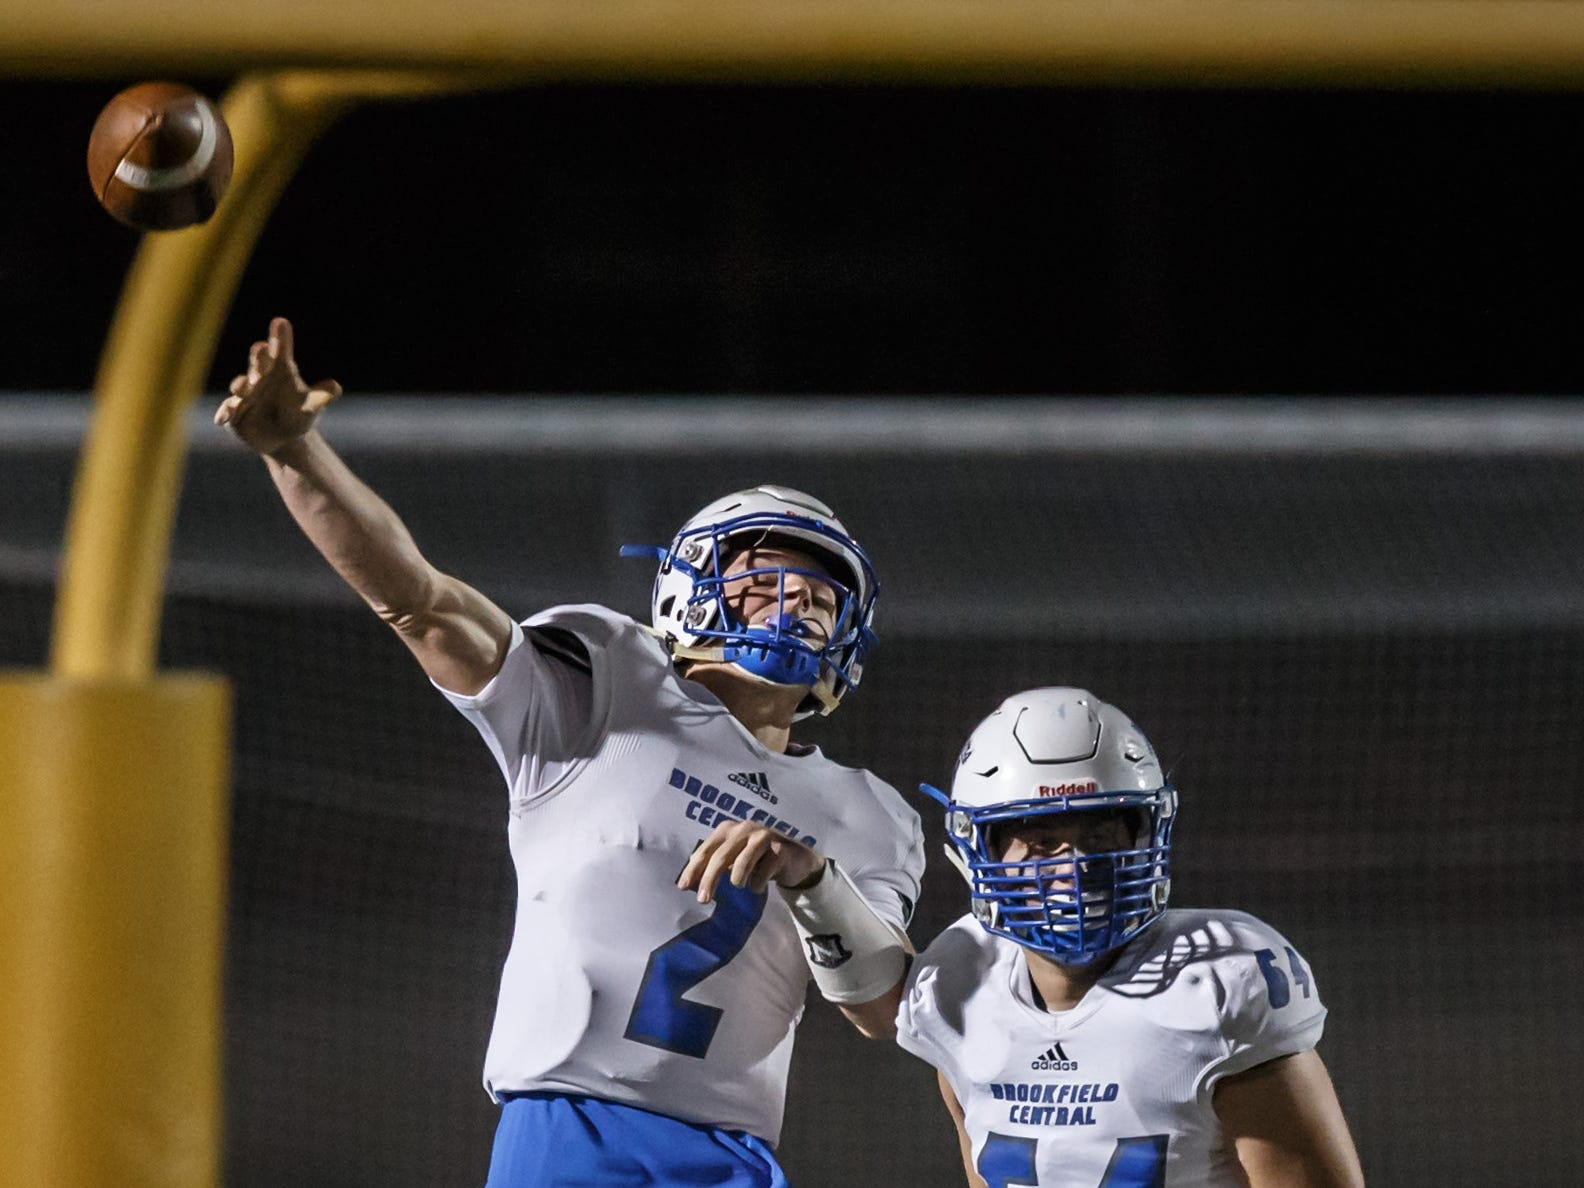 Brookfield Central quarterback Drew Leszczynski (2) sends a bomb downfield late in the first half of the game against Marquette at Hart Park on Friday, Sept. 21, 2018. The pass fell incomplete.